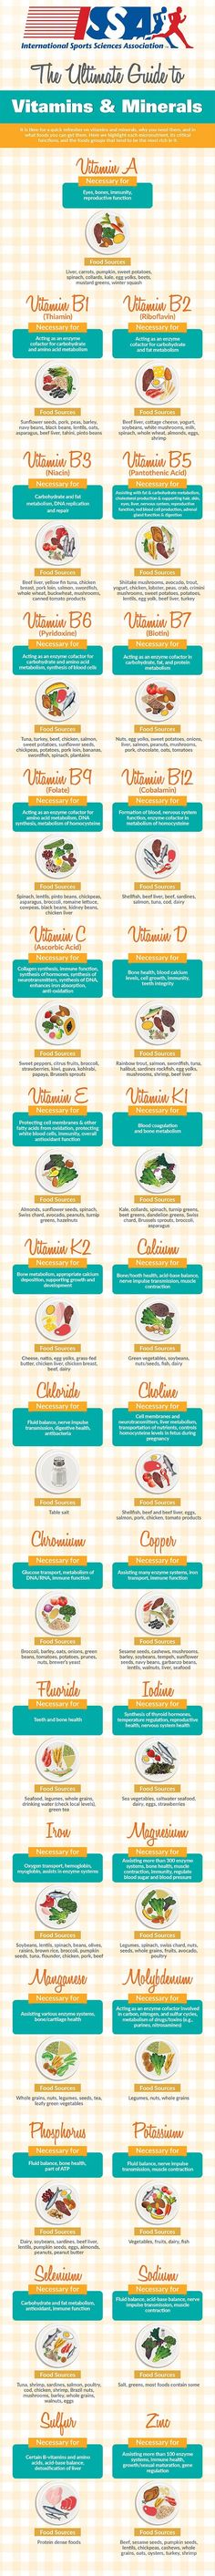 ABC of vitamins & minerals